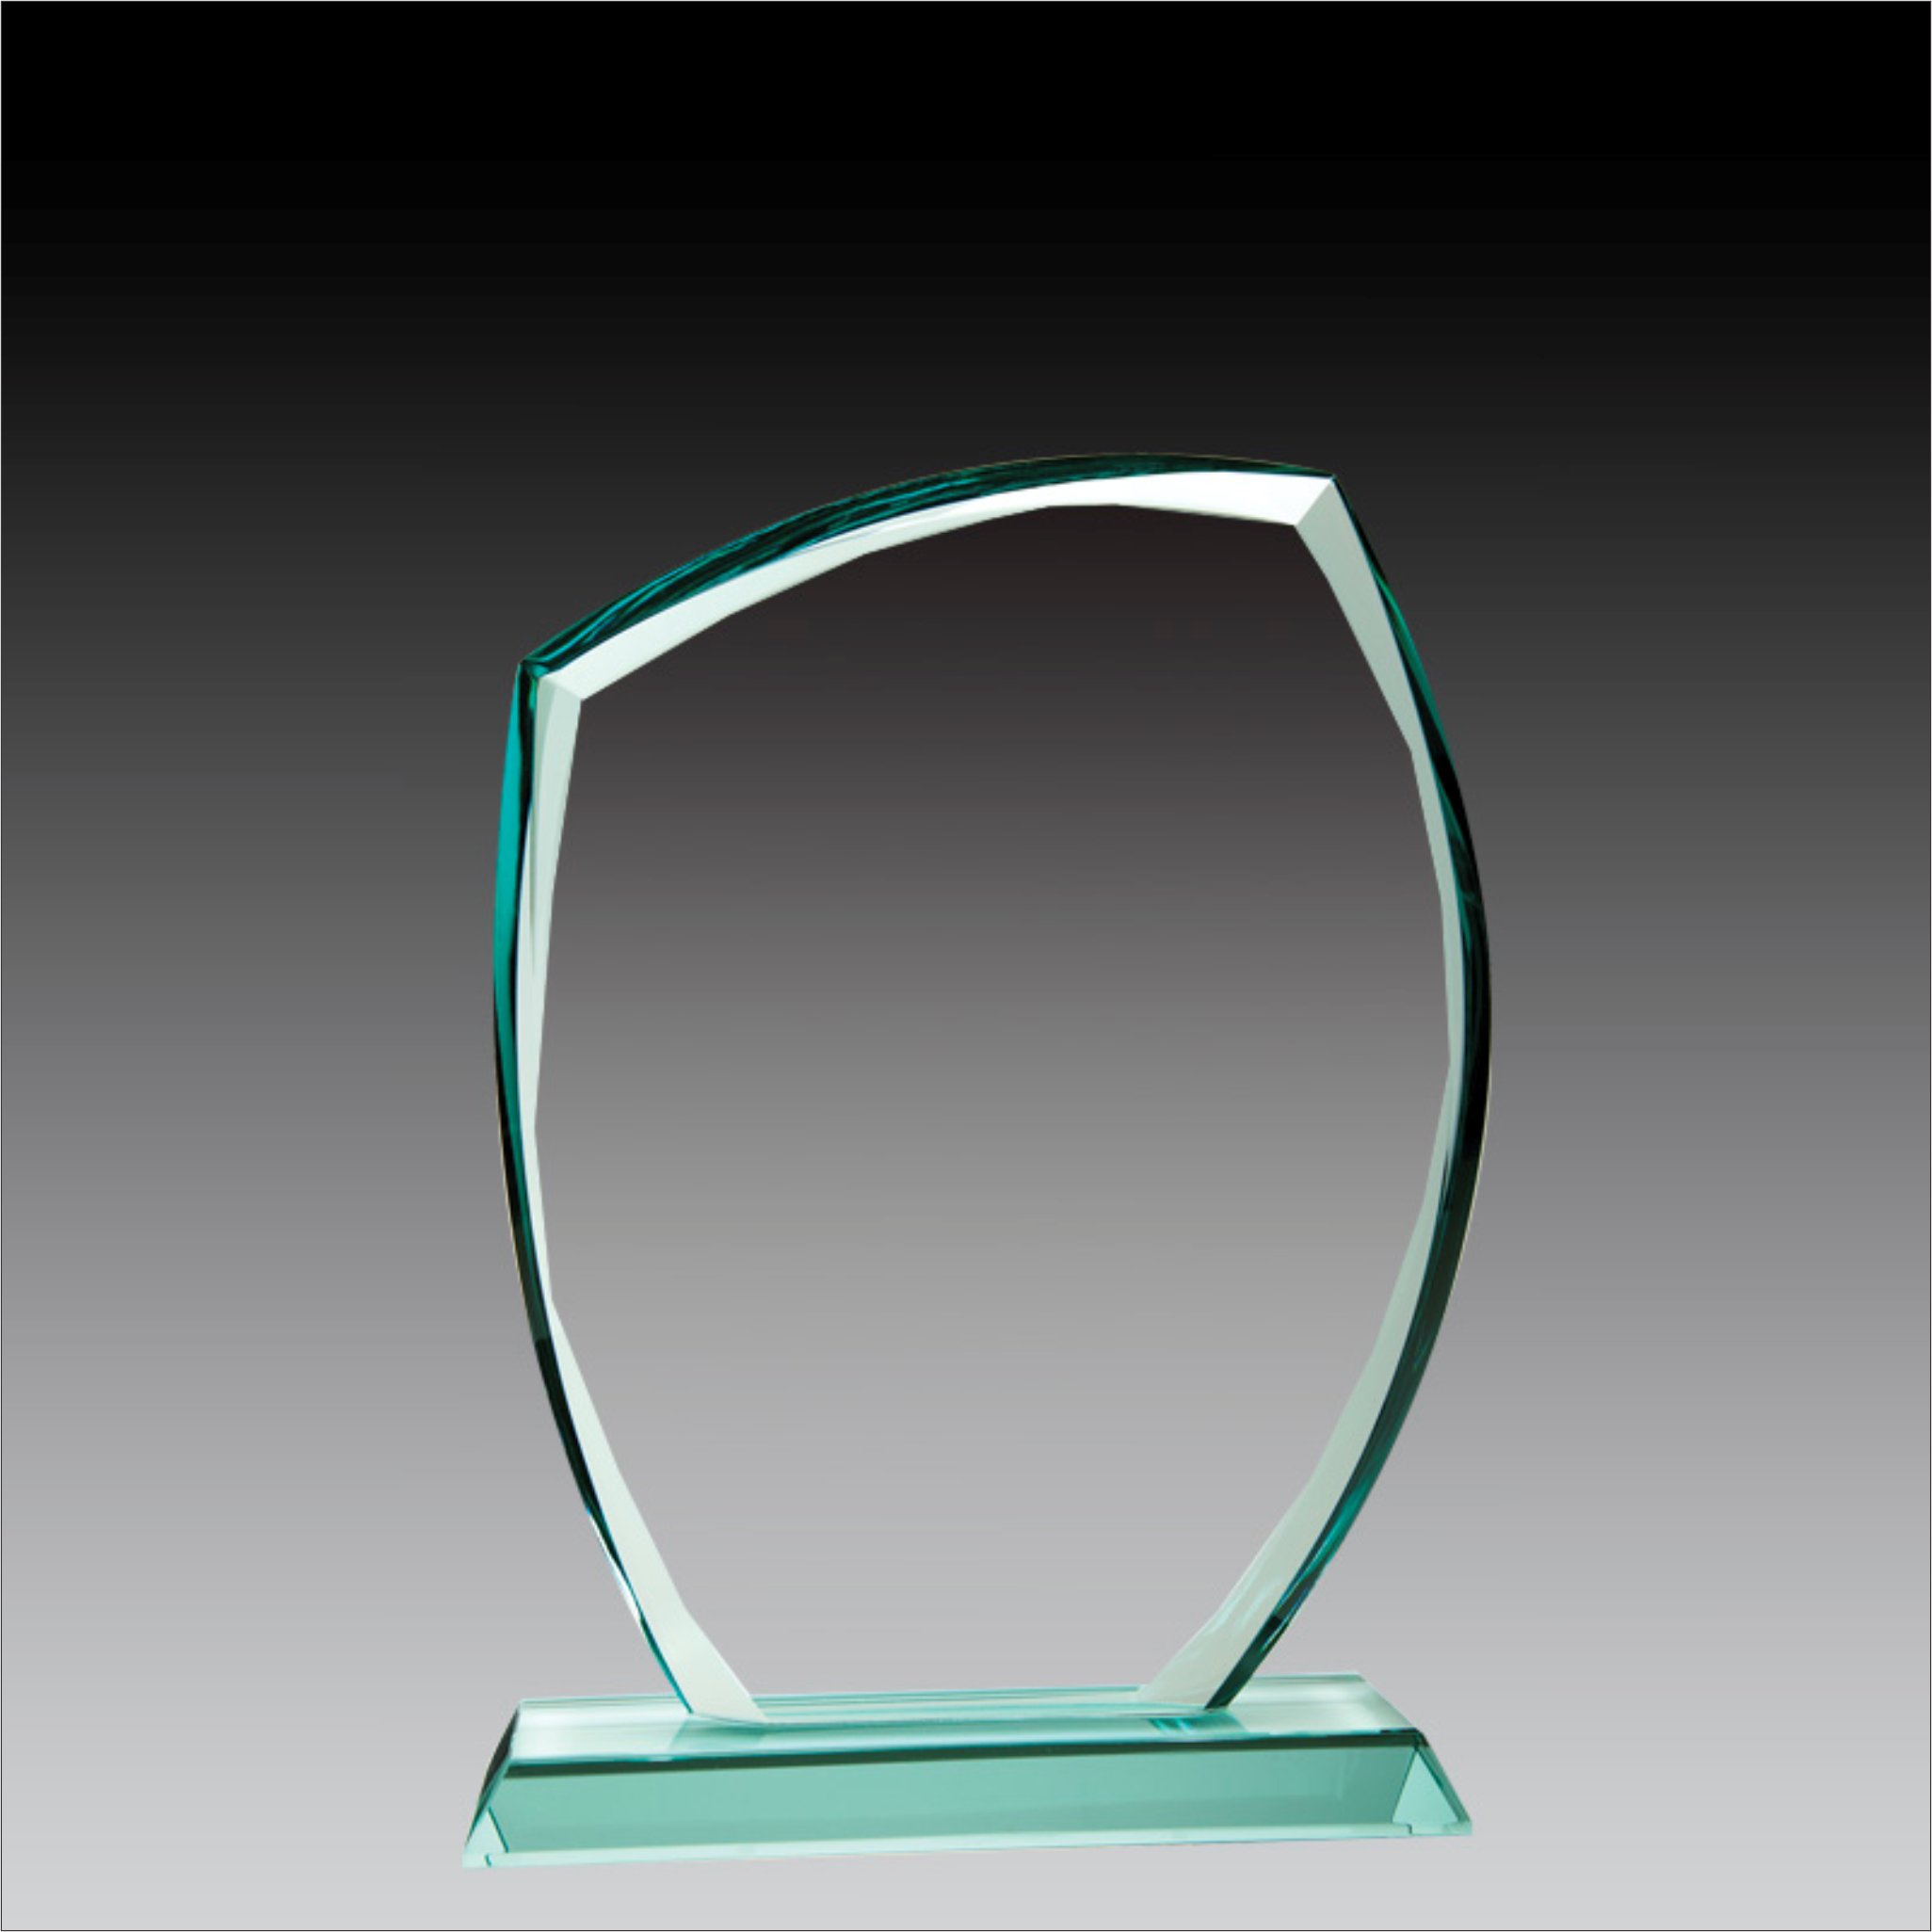 Peaked Corner Glass - Prestige series